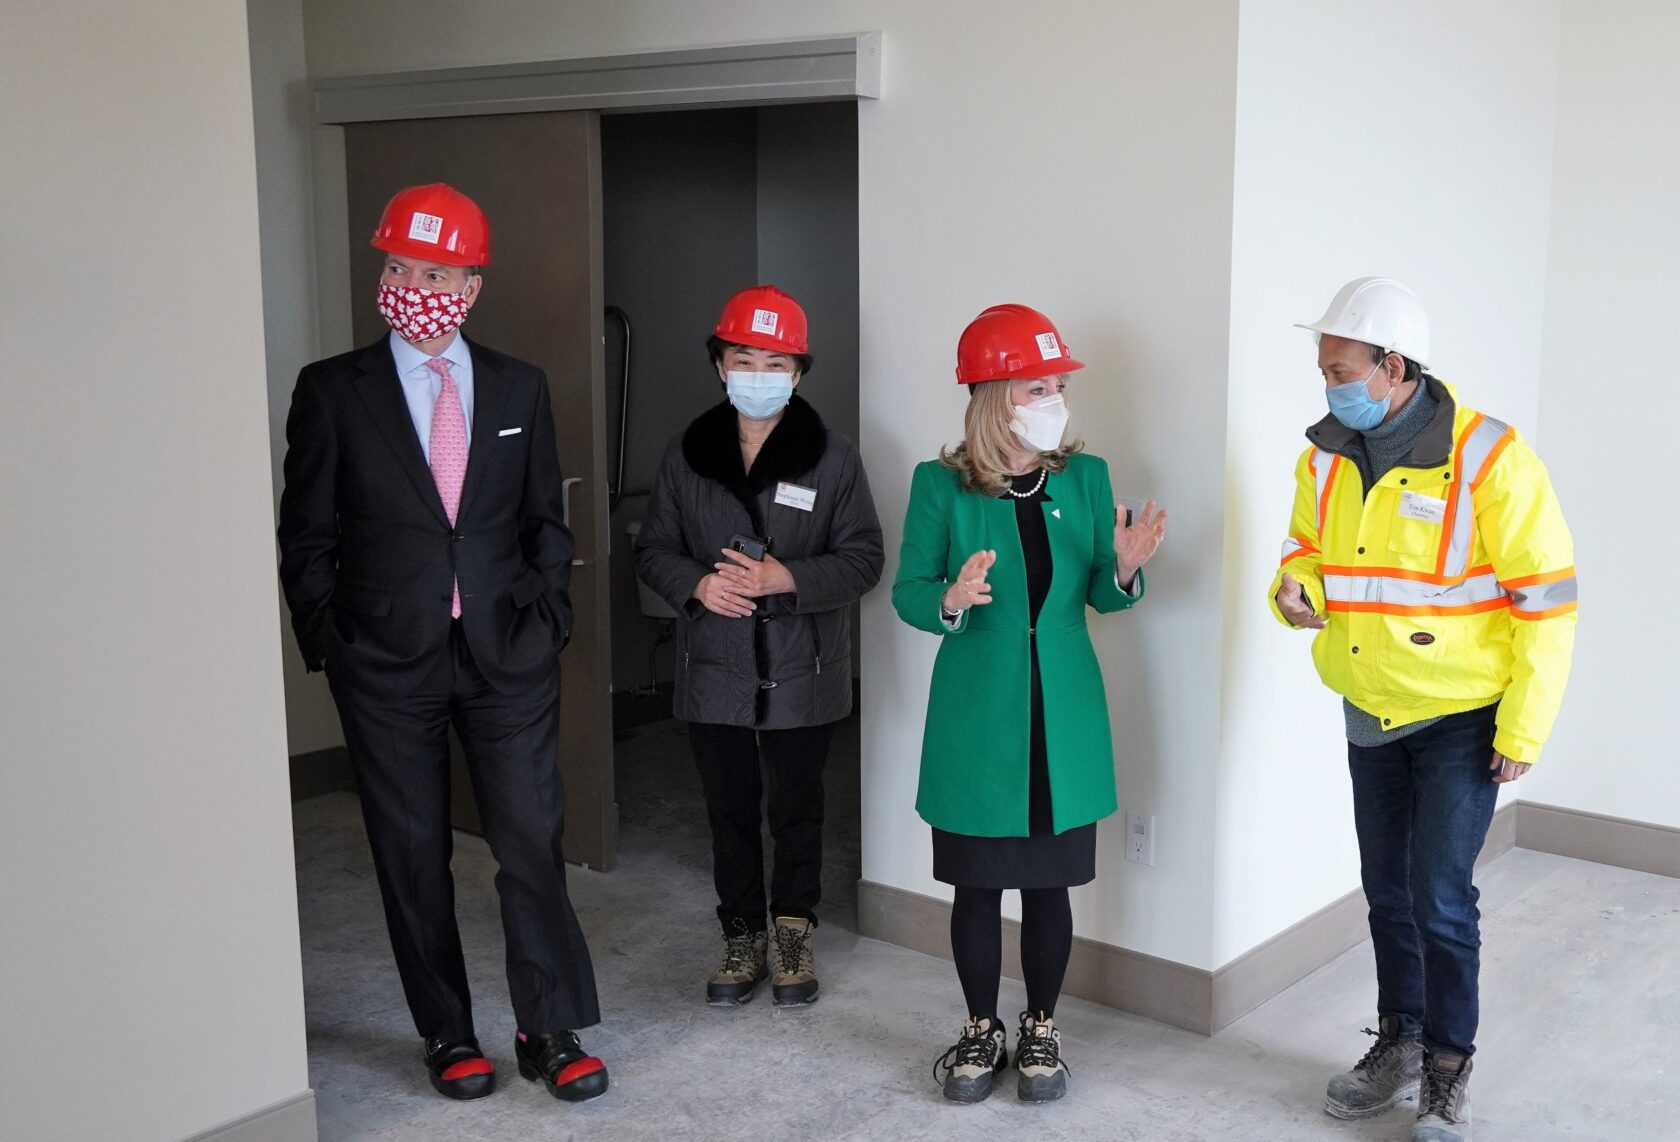 four people wearing helmet at a room